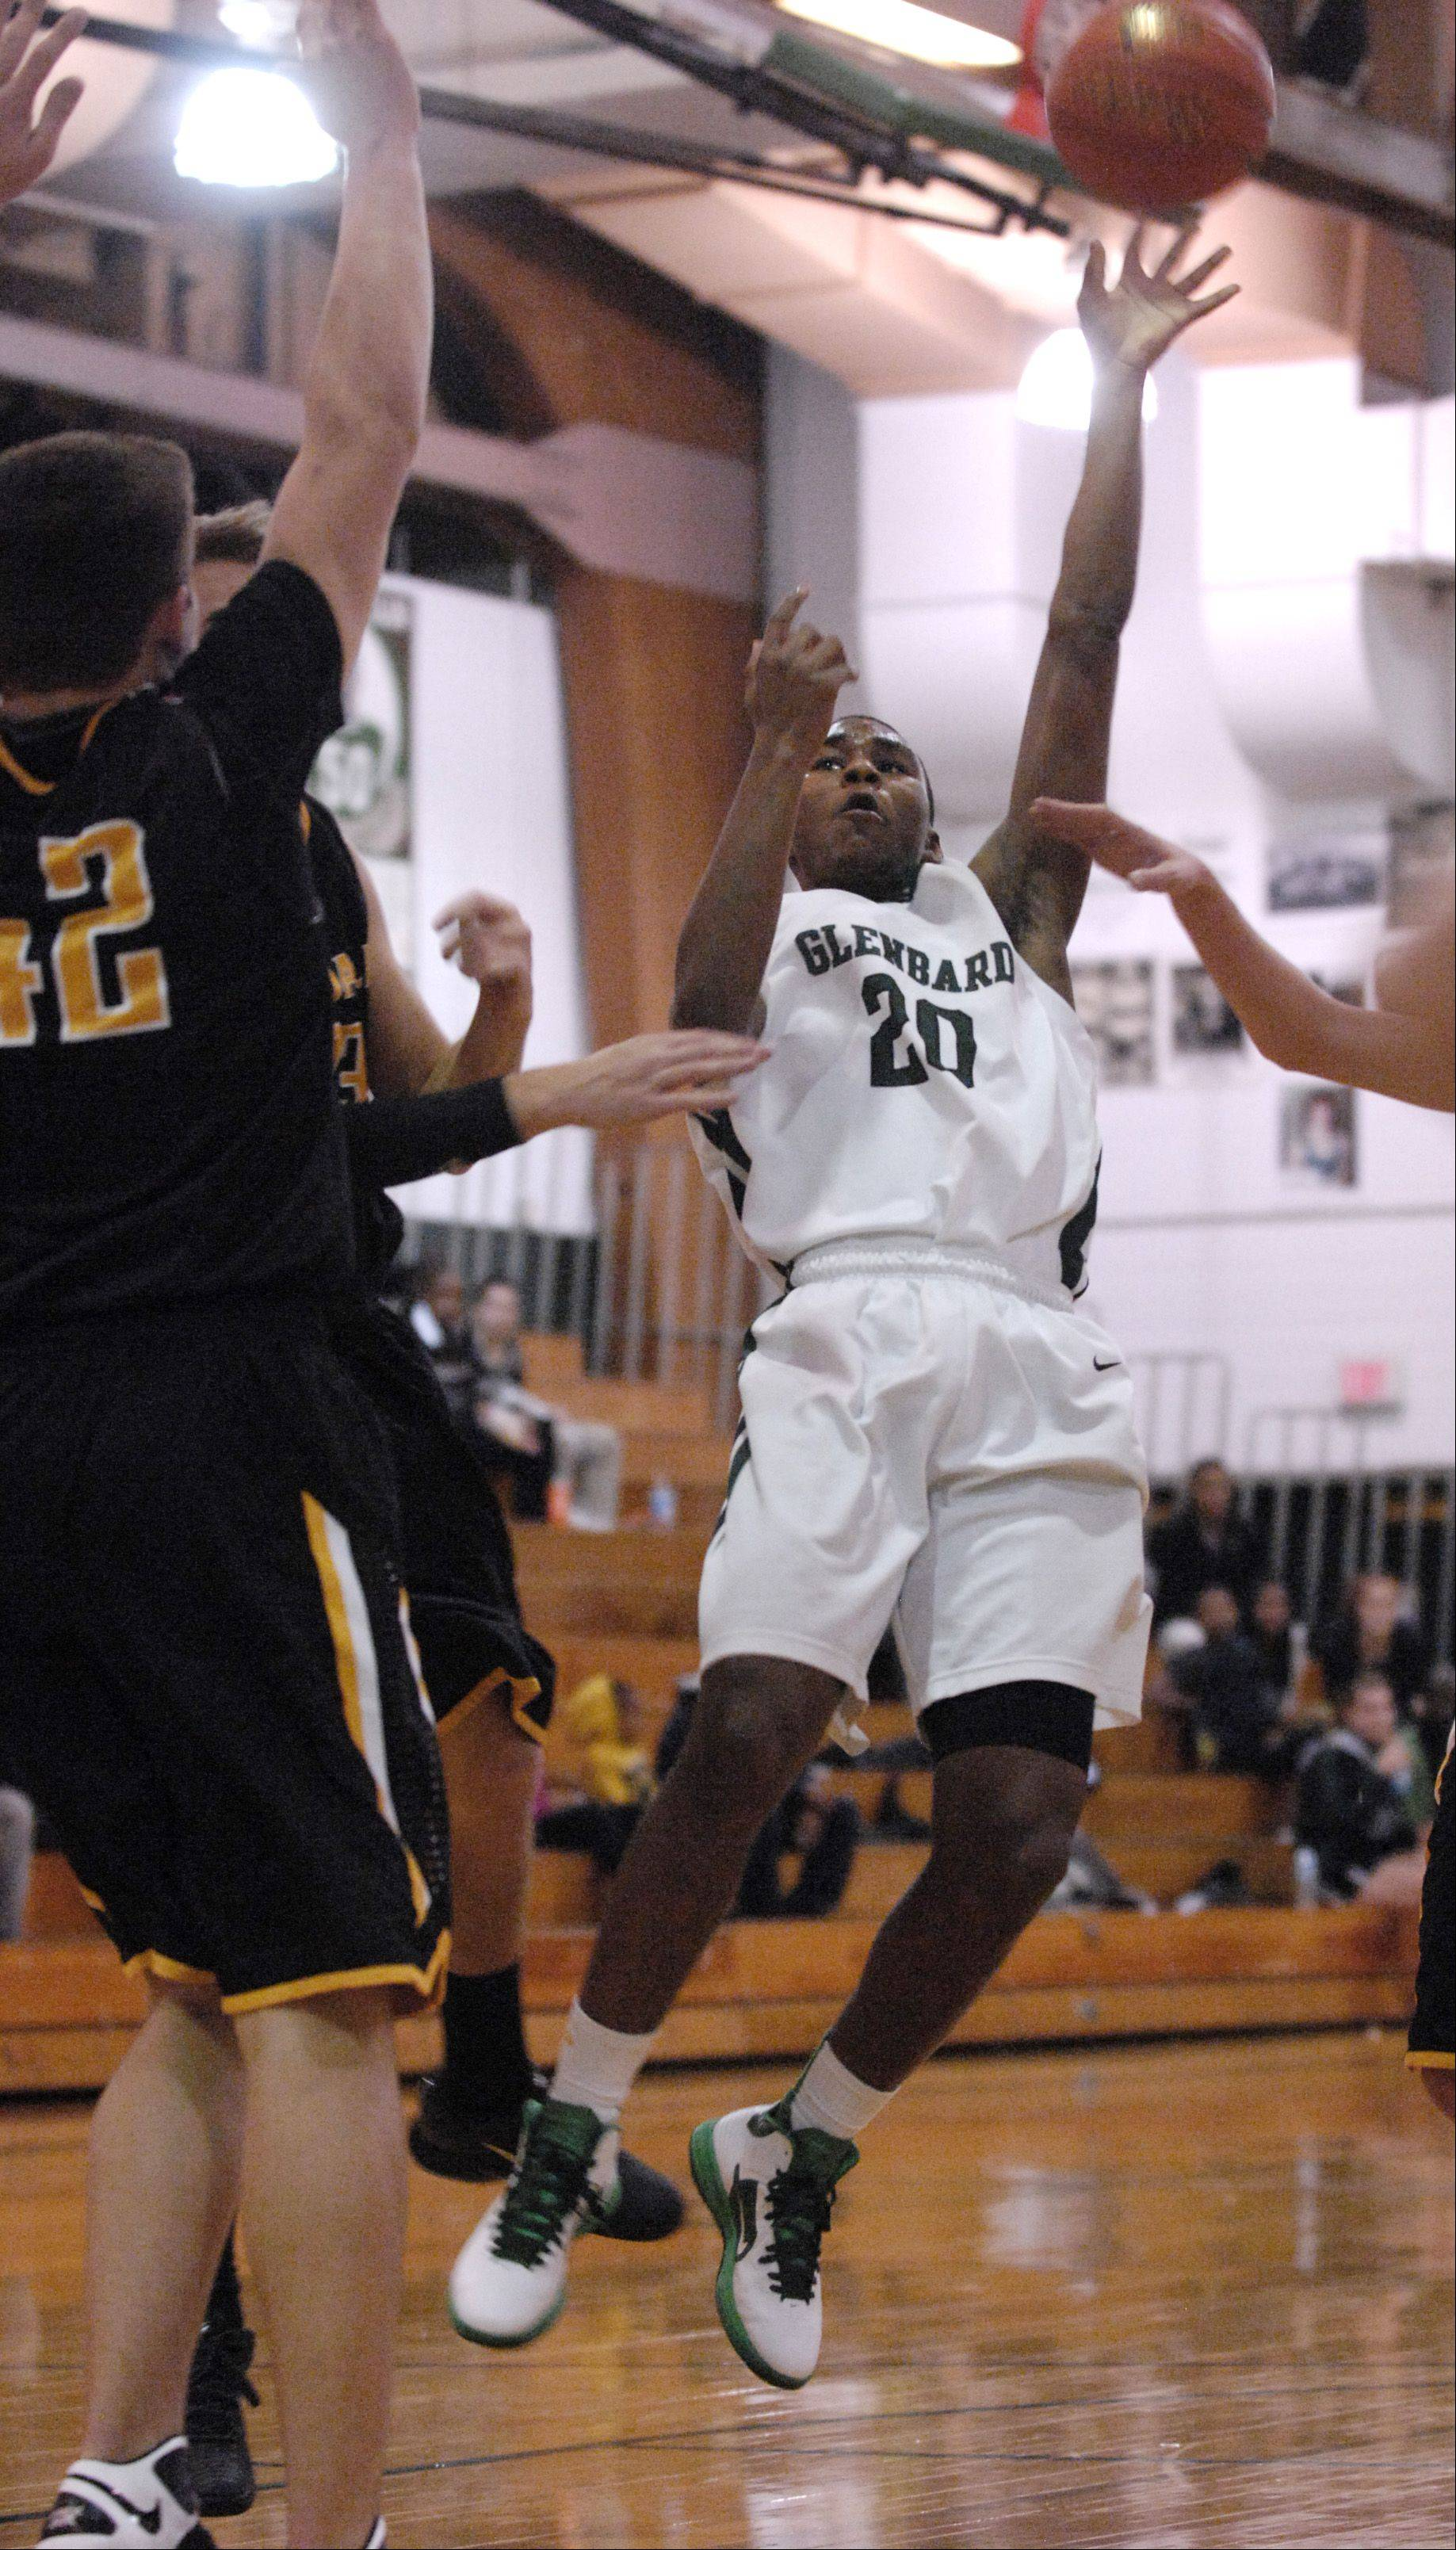 Corey Davis of Glenbard West takes a shot against Hinsdale South High School.